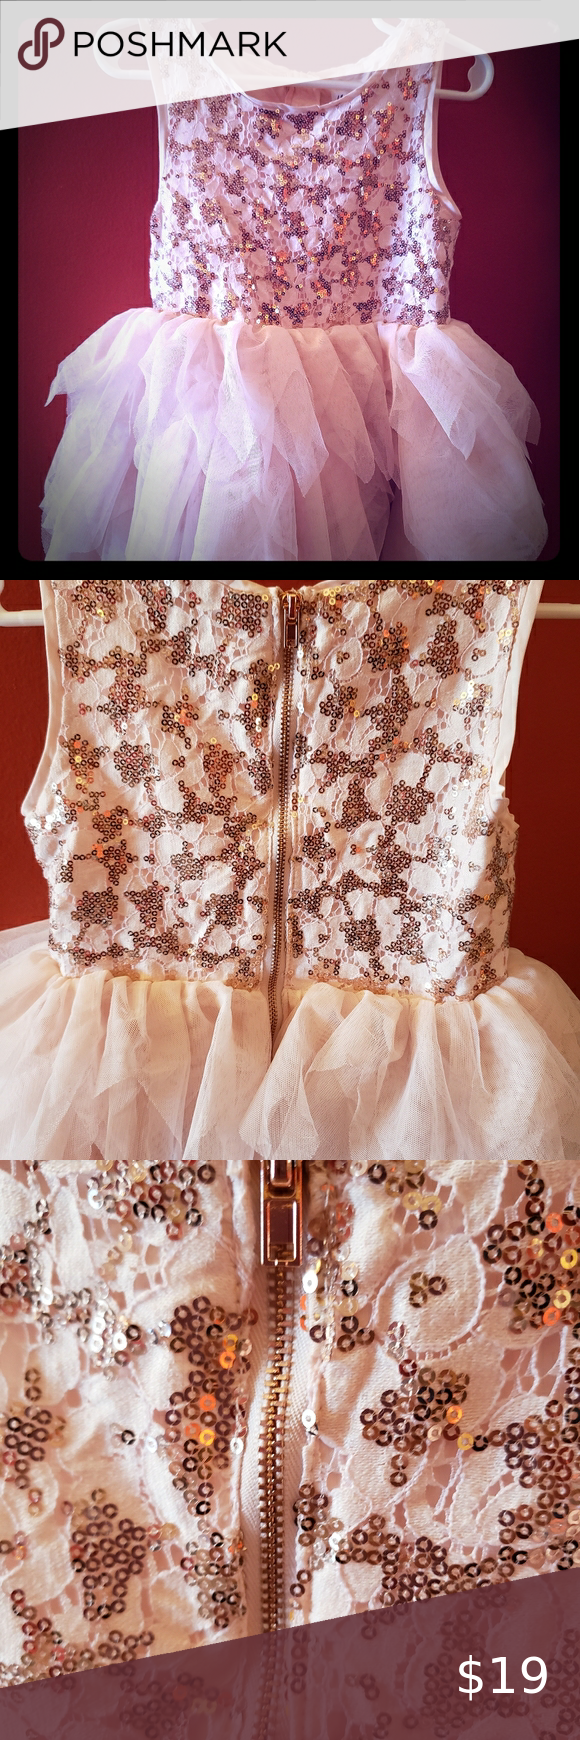 H M Blush And Sequined Dress With Tulle Bottom This H M Dress Has Only Been Worn Once Has Beautiful Sequences On The To In 2020 Sequin Dress Hm Dress Rose Gold Dress